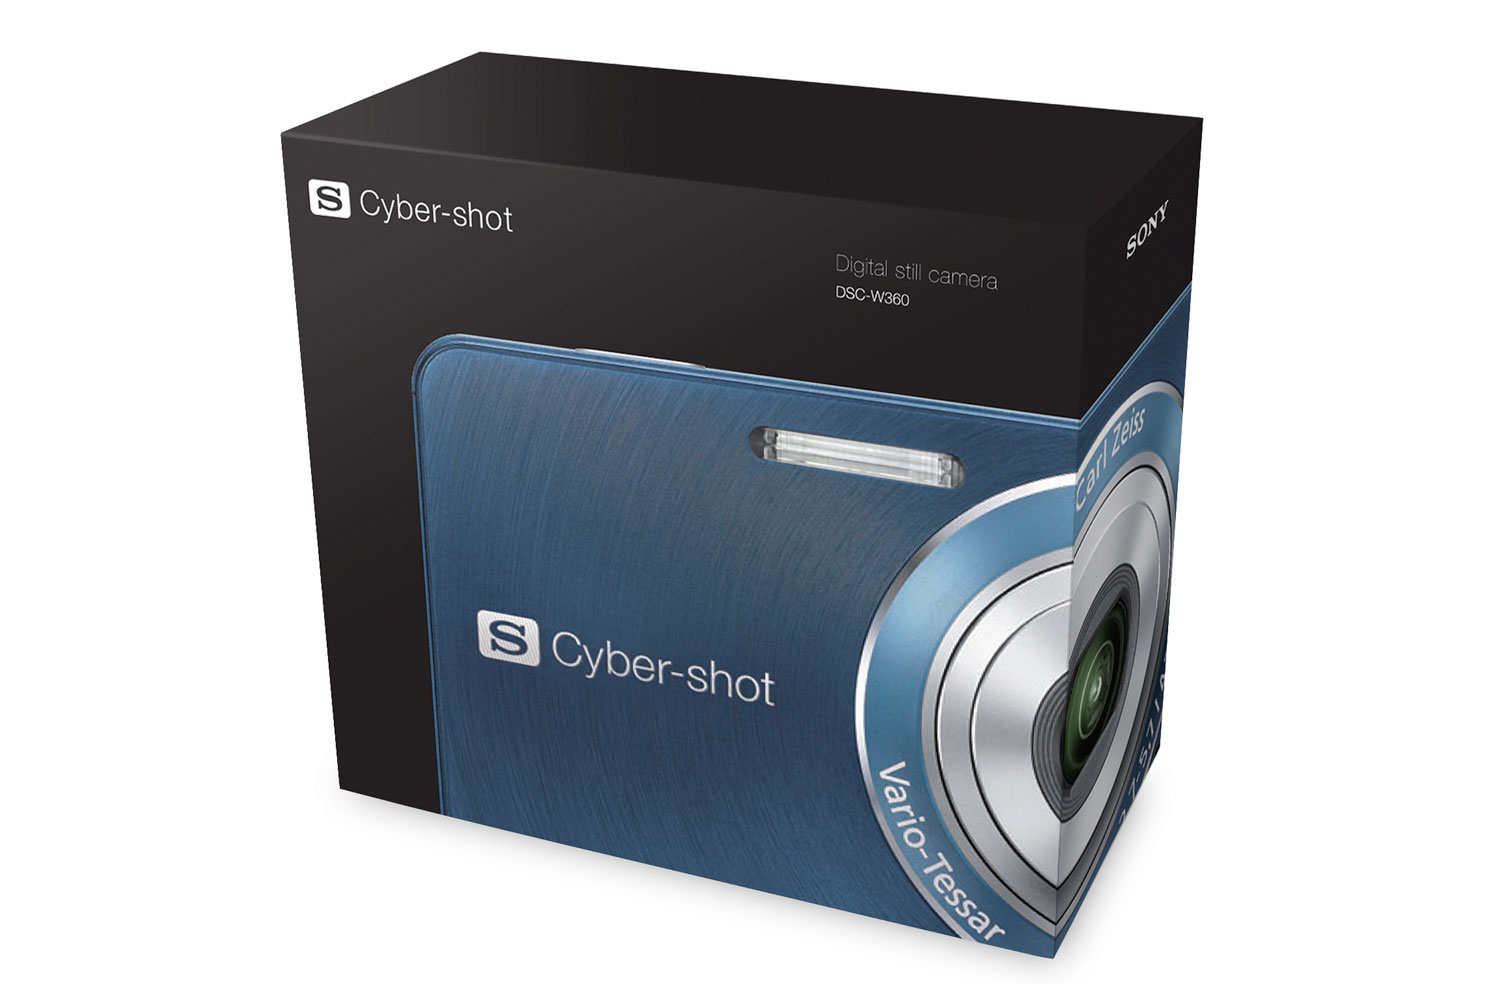 Sony Cyber-shot packaging